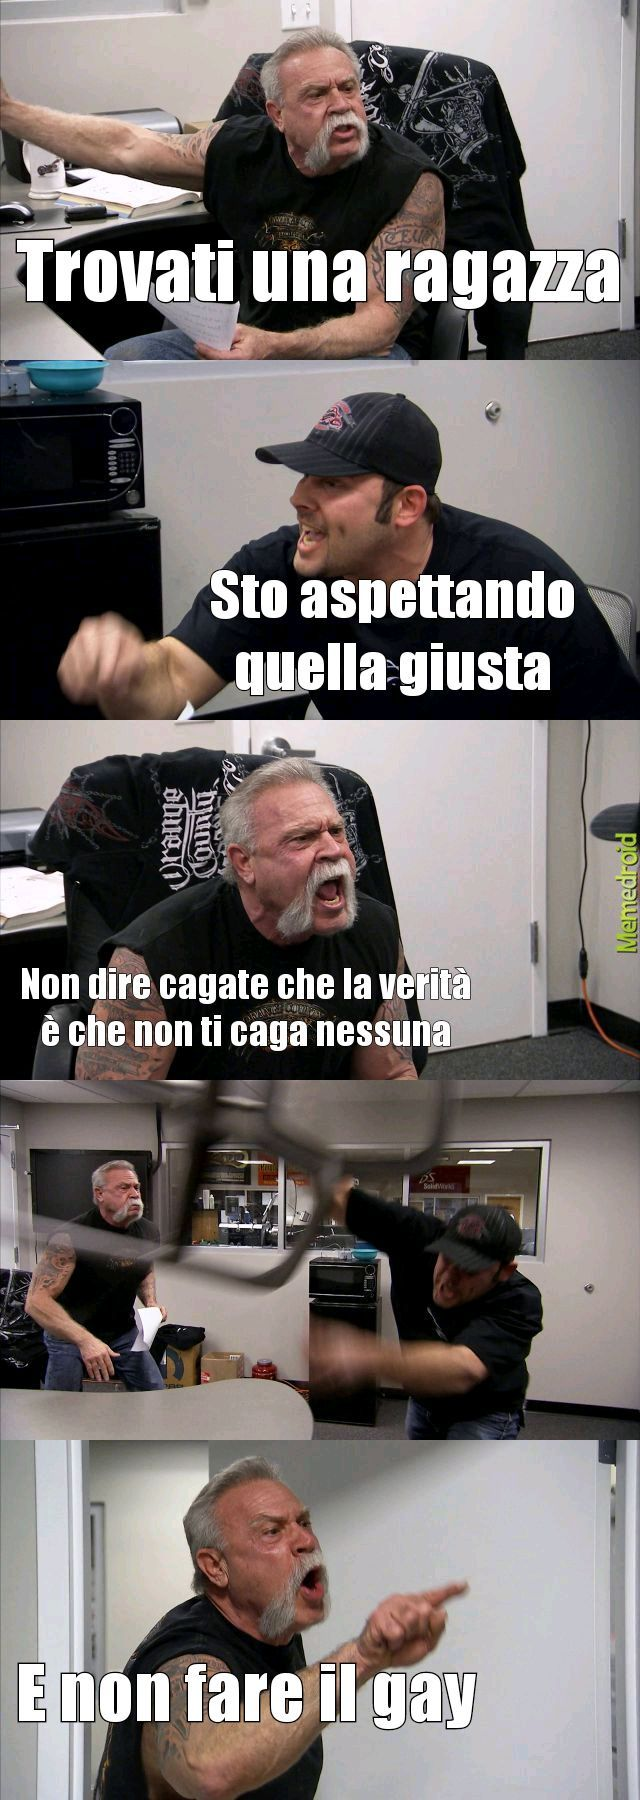 Discussioni belle - meme